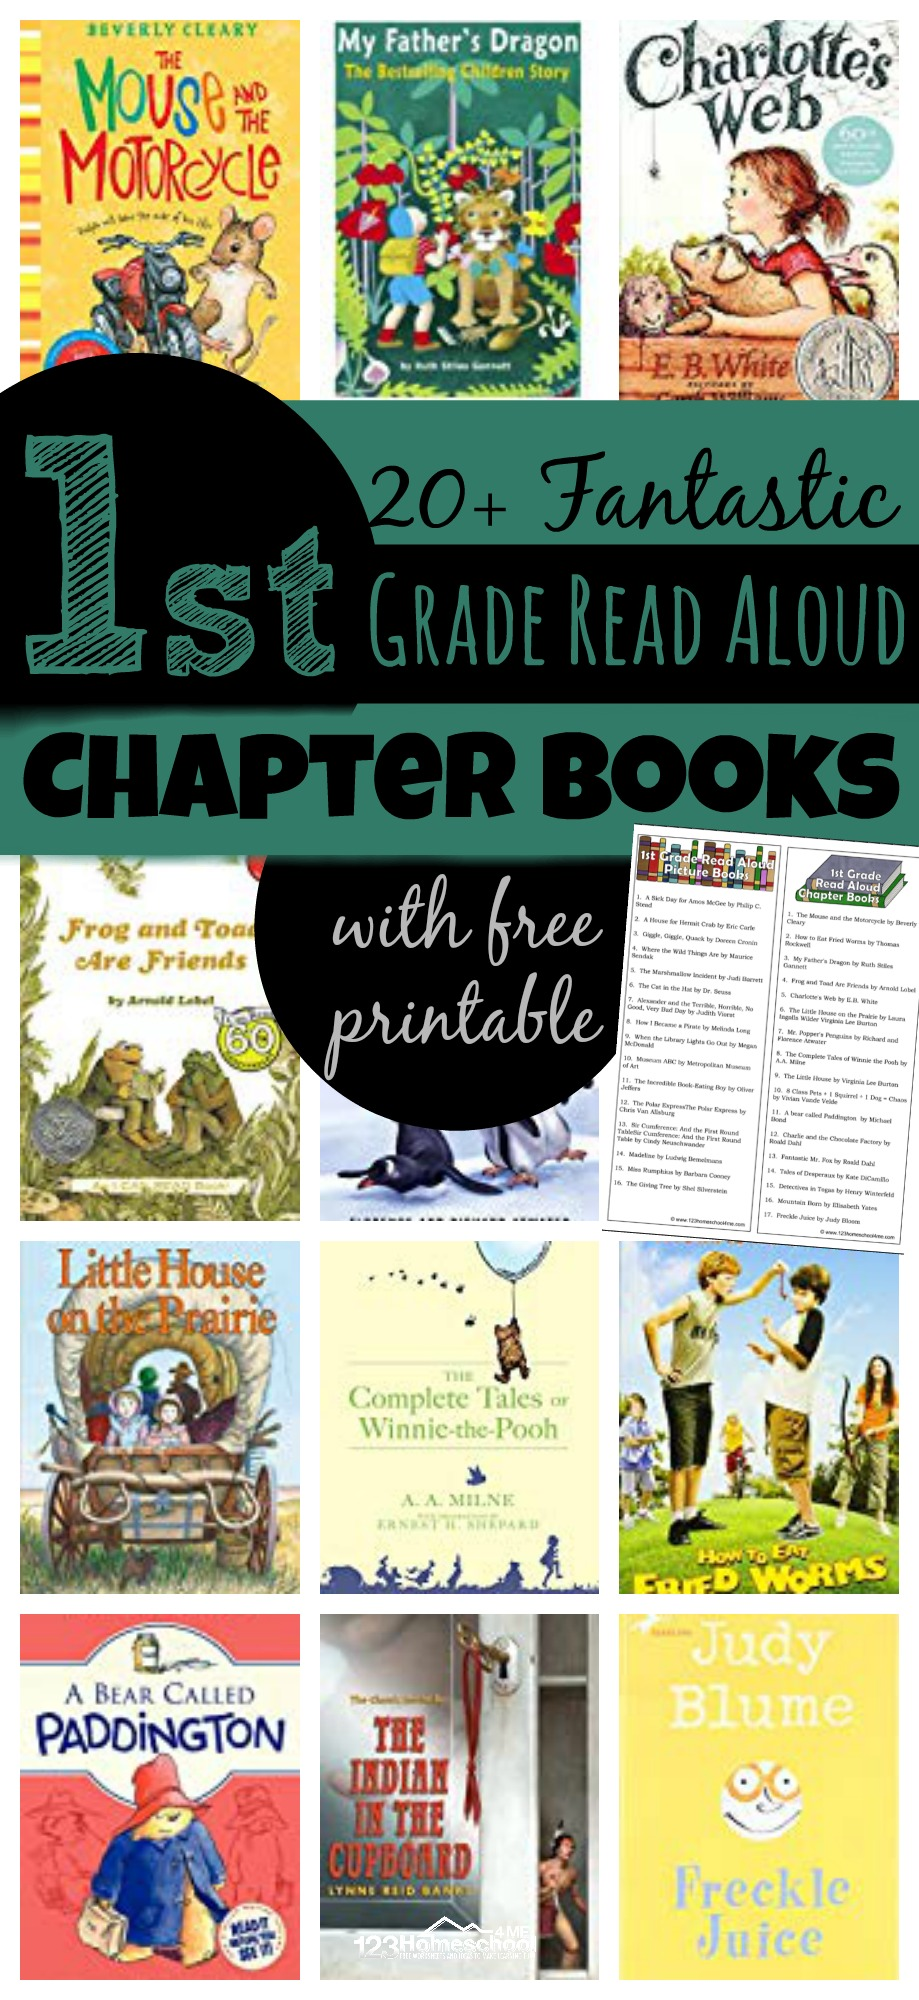 First Grade Read Aloud Chapter Books